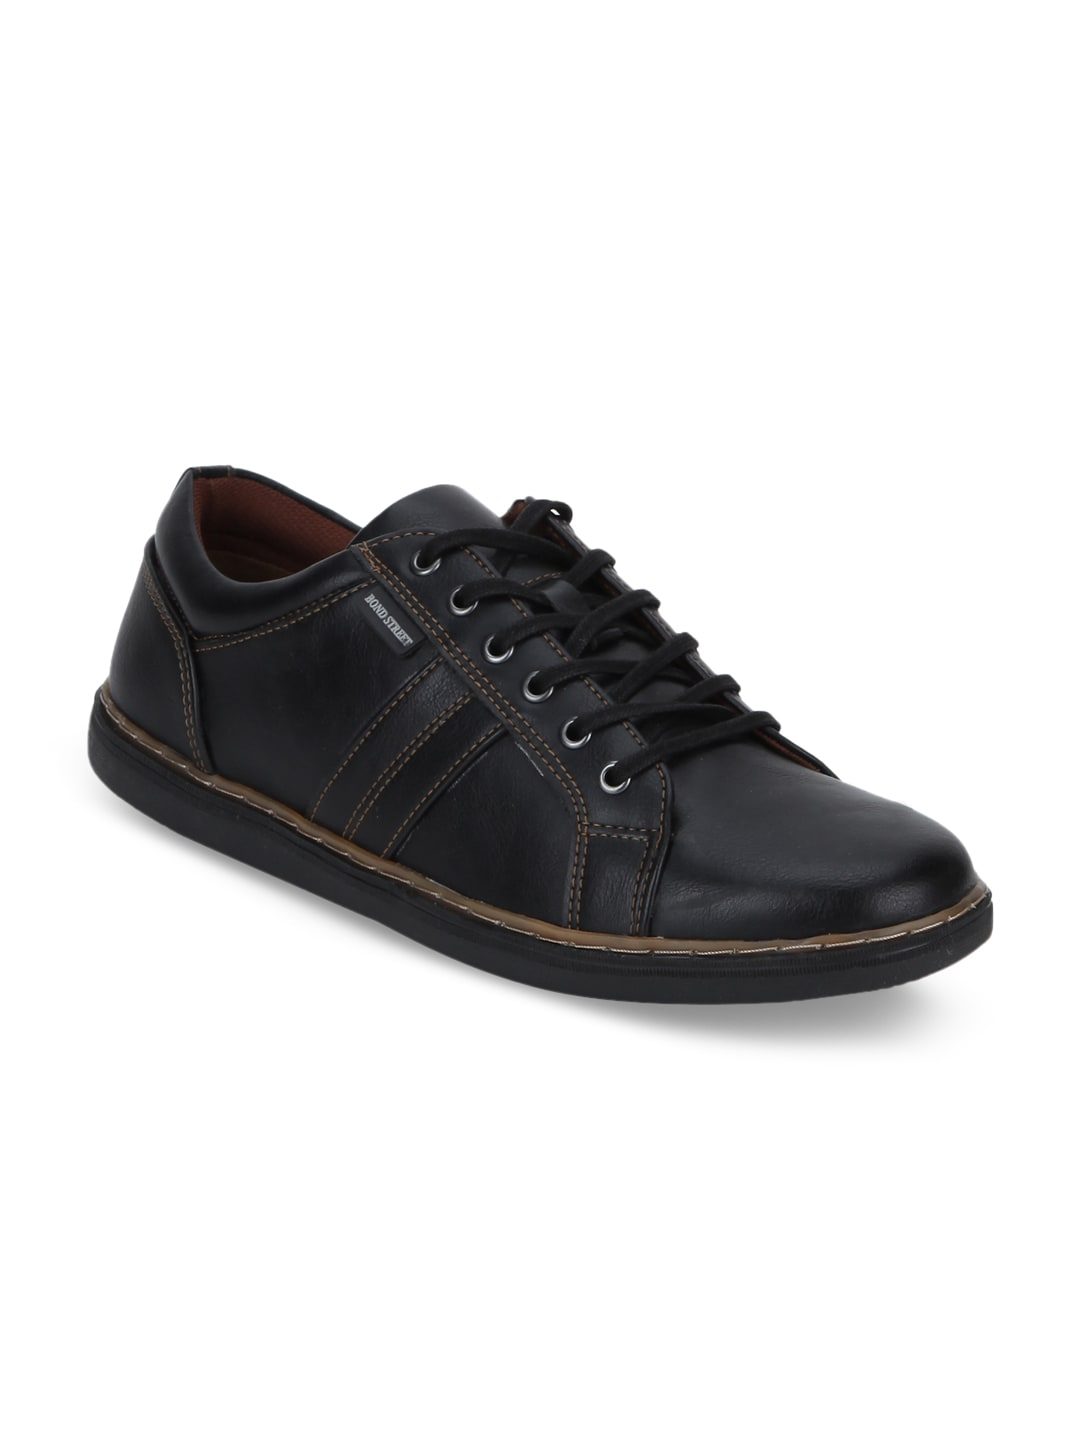 dd403cadf72 Shoes - Buy Shoes for Men